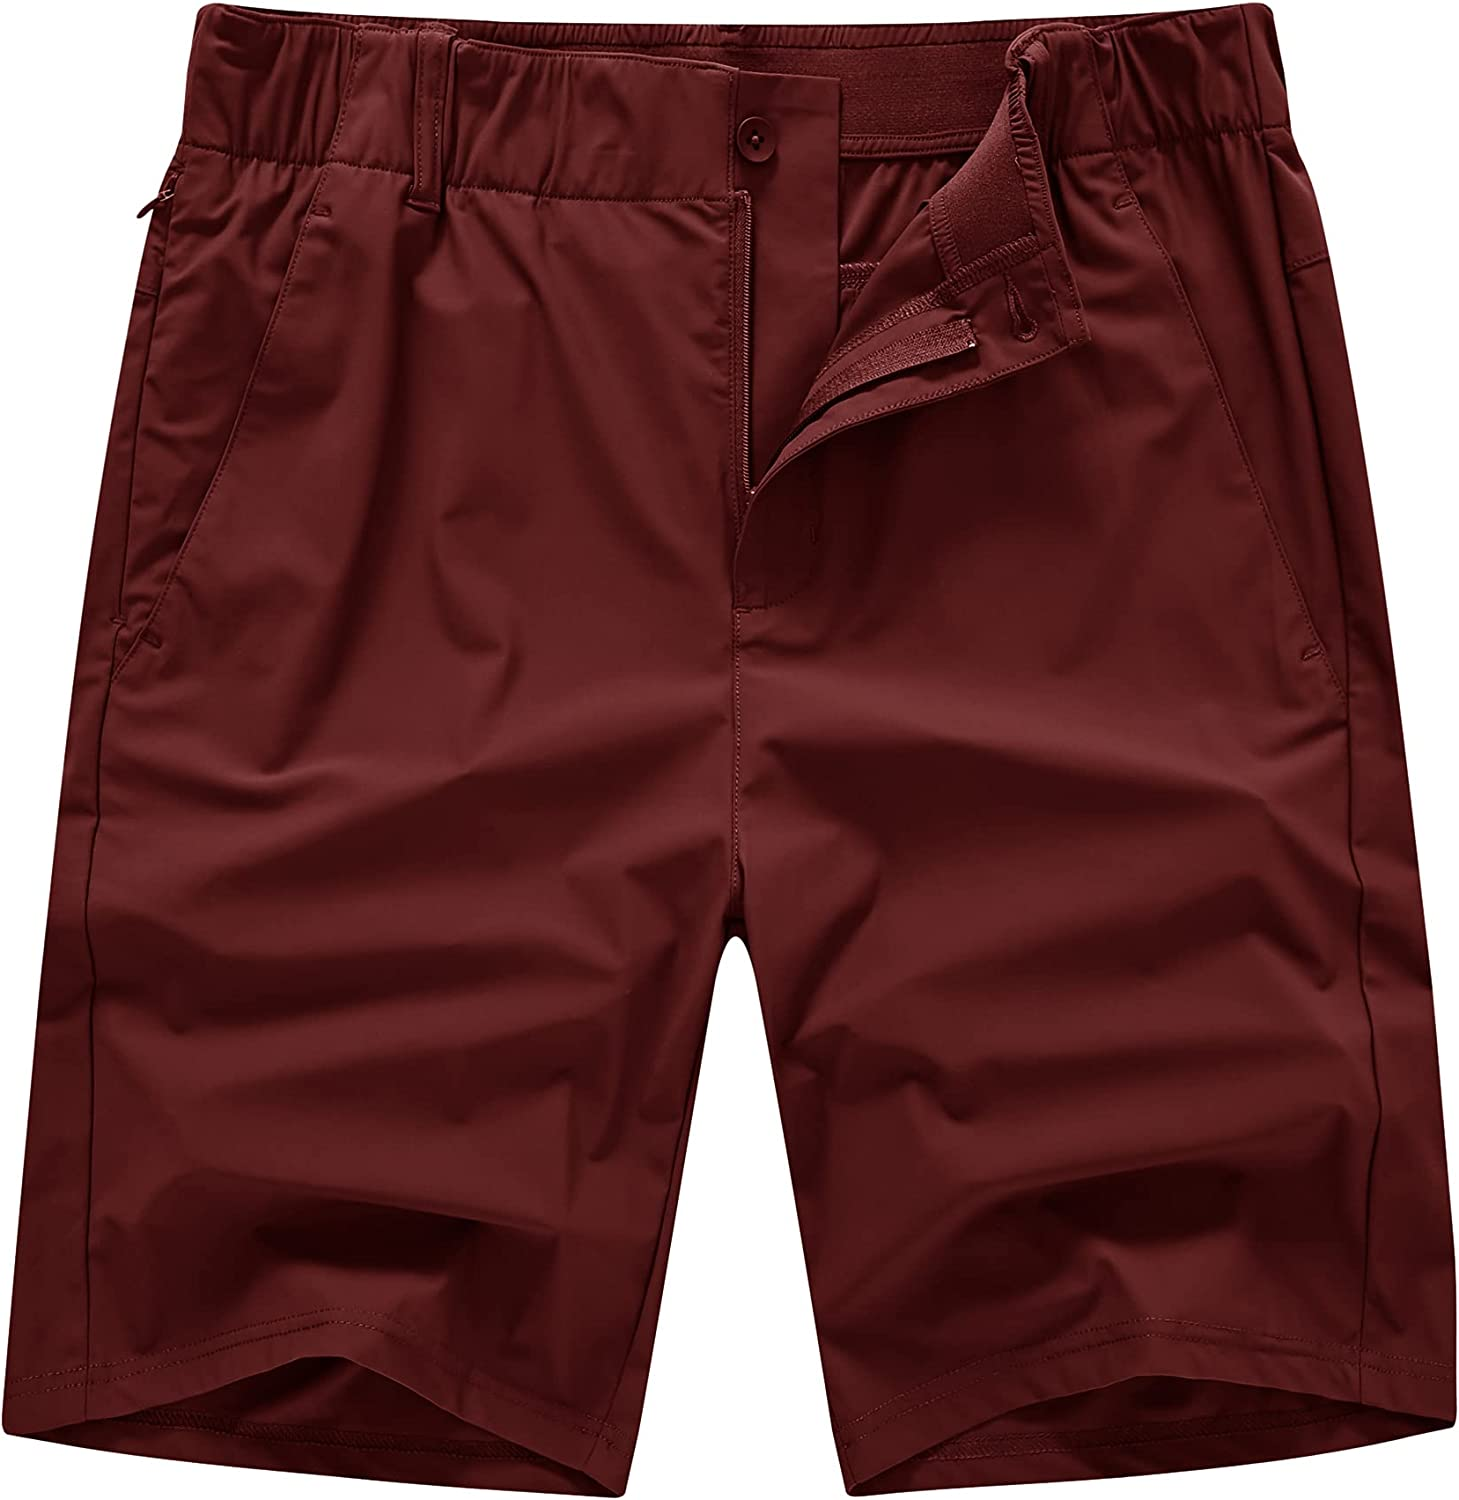 YSENTO Men's Golf Cargo Work Shorts Relaxed Fit Quick Dry Hiking